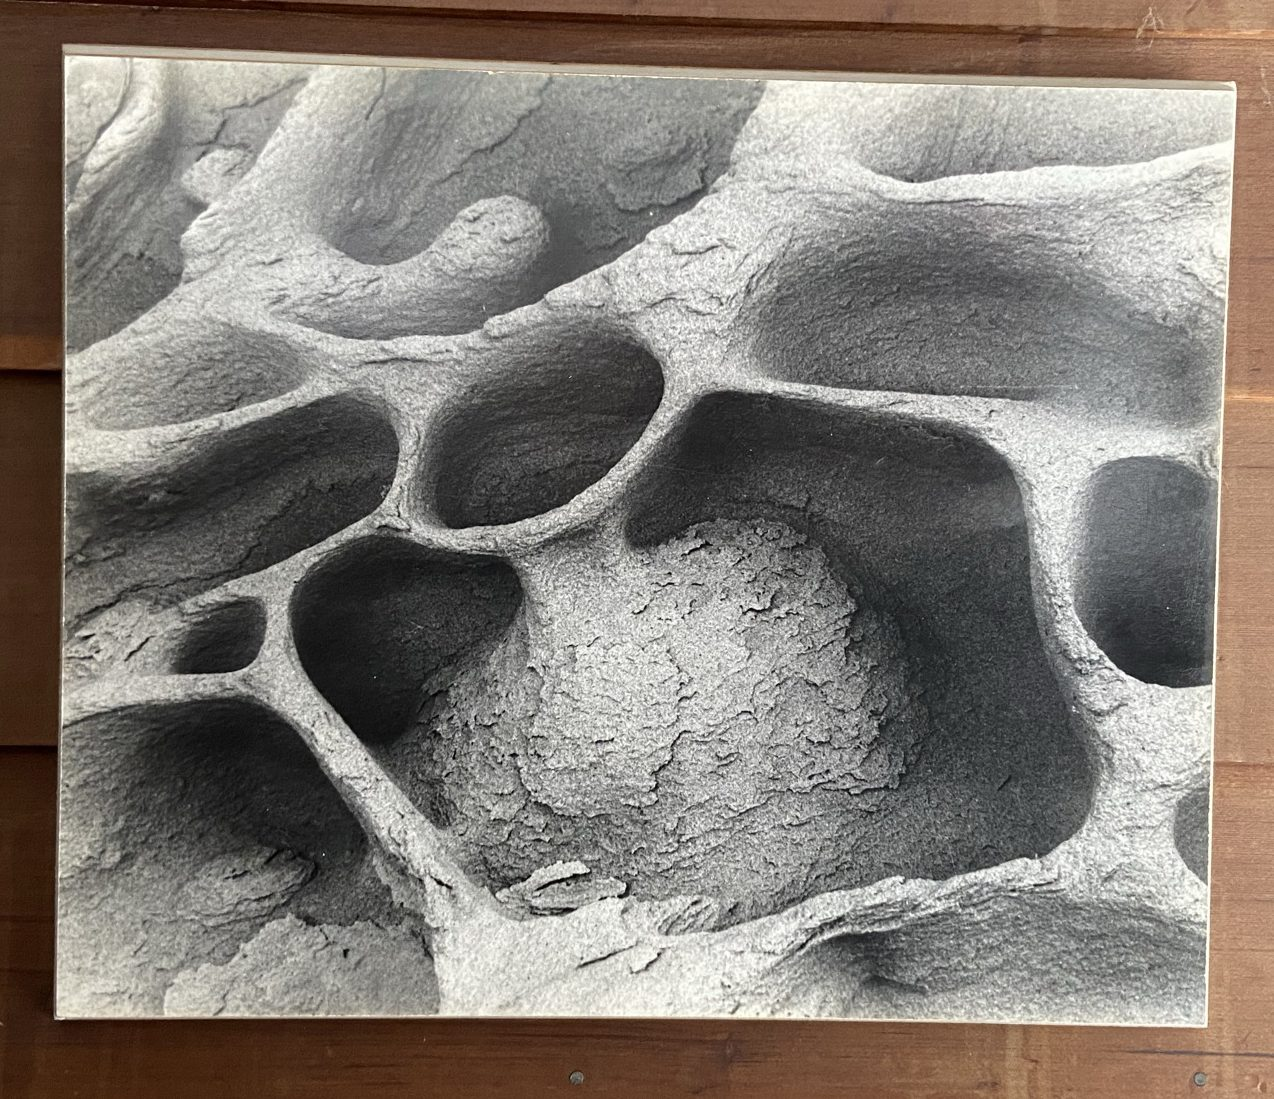 An intricately weathered cave wall